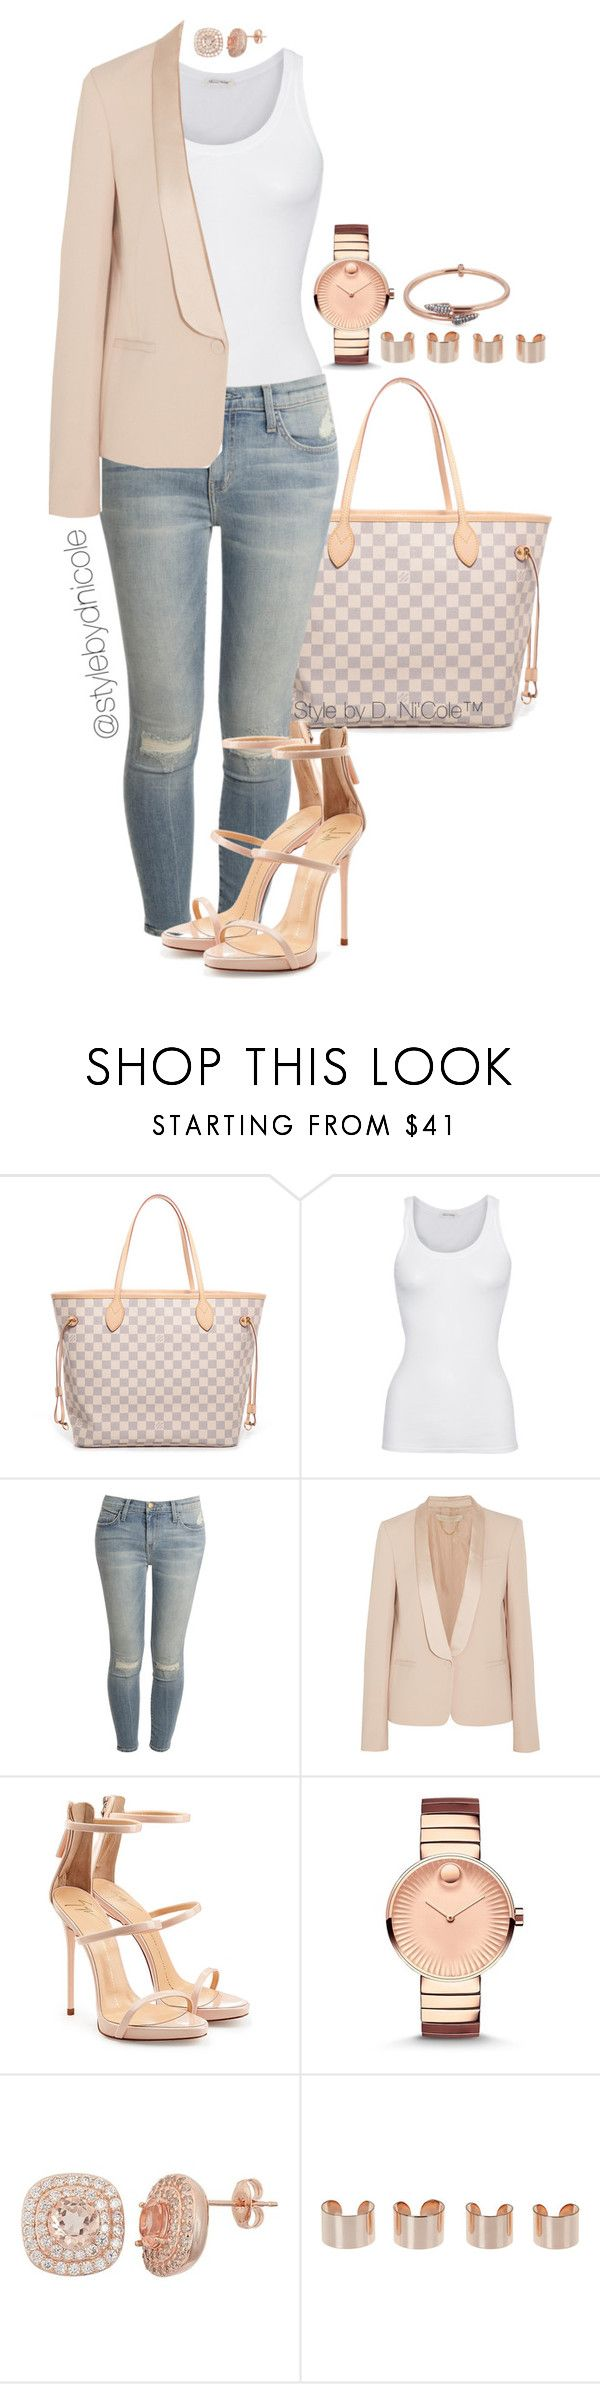 """Untitled #3193"" by stylebydnicole ❤ liked on Polyvore featuring Louis Vuitton, American Vintage, Current/Elliott, Vanessa Bruno, Giuseppe Zanotti, Movado, Maison Margiela and Katie Rowland"